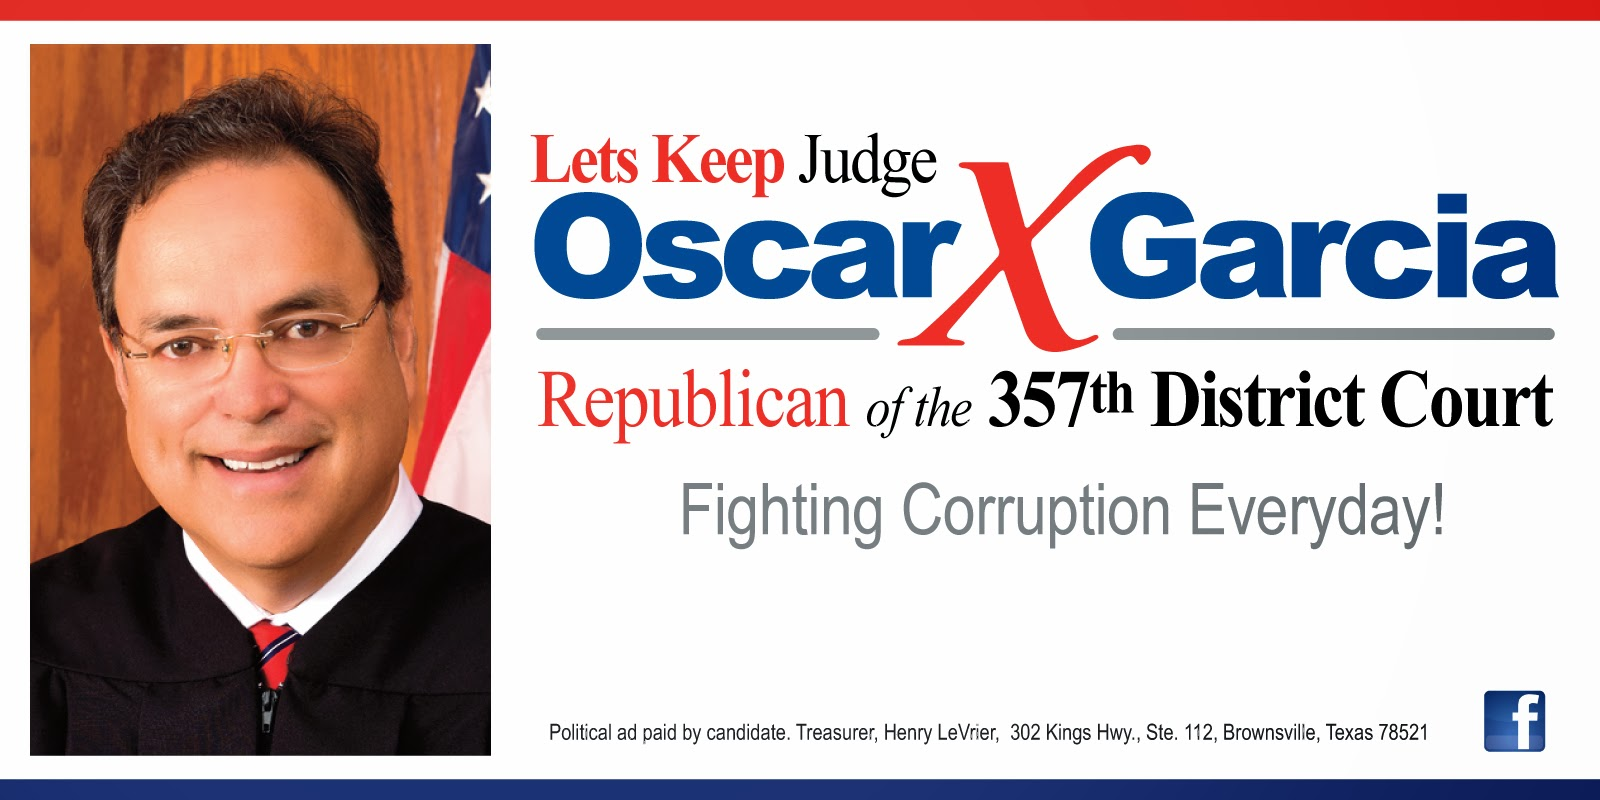 KEEP OSCAR JUDGE AT 357TH DISTRICT COURT